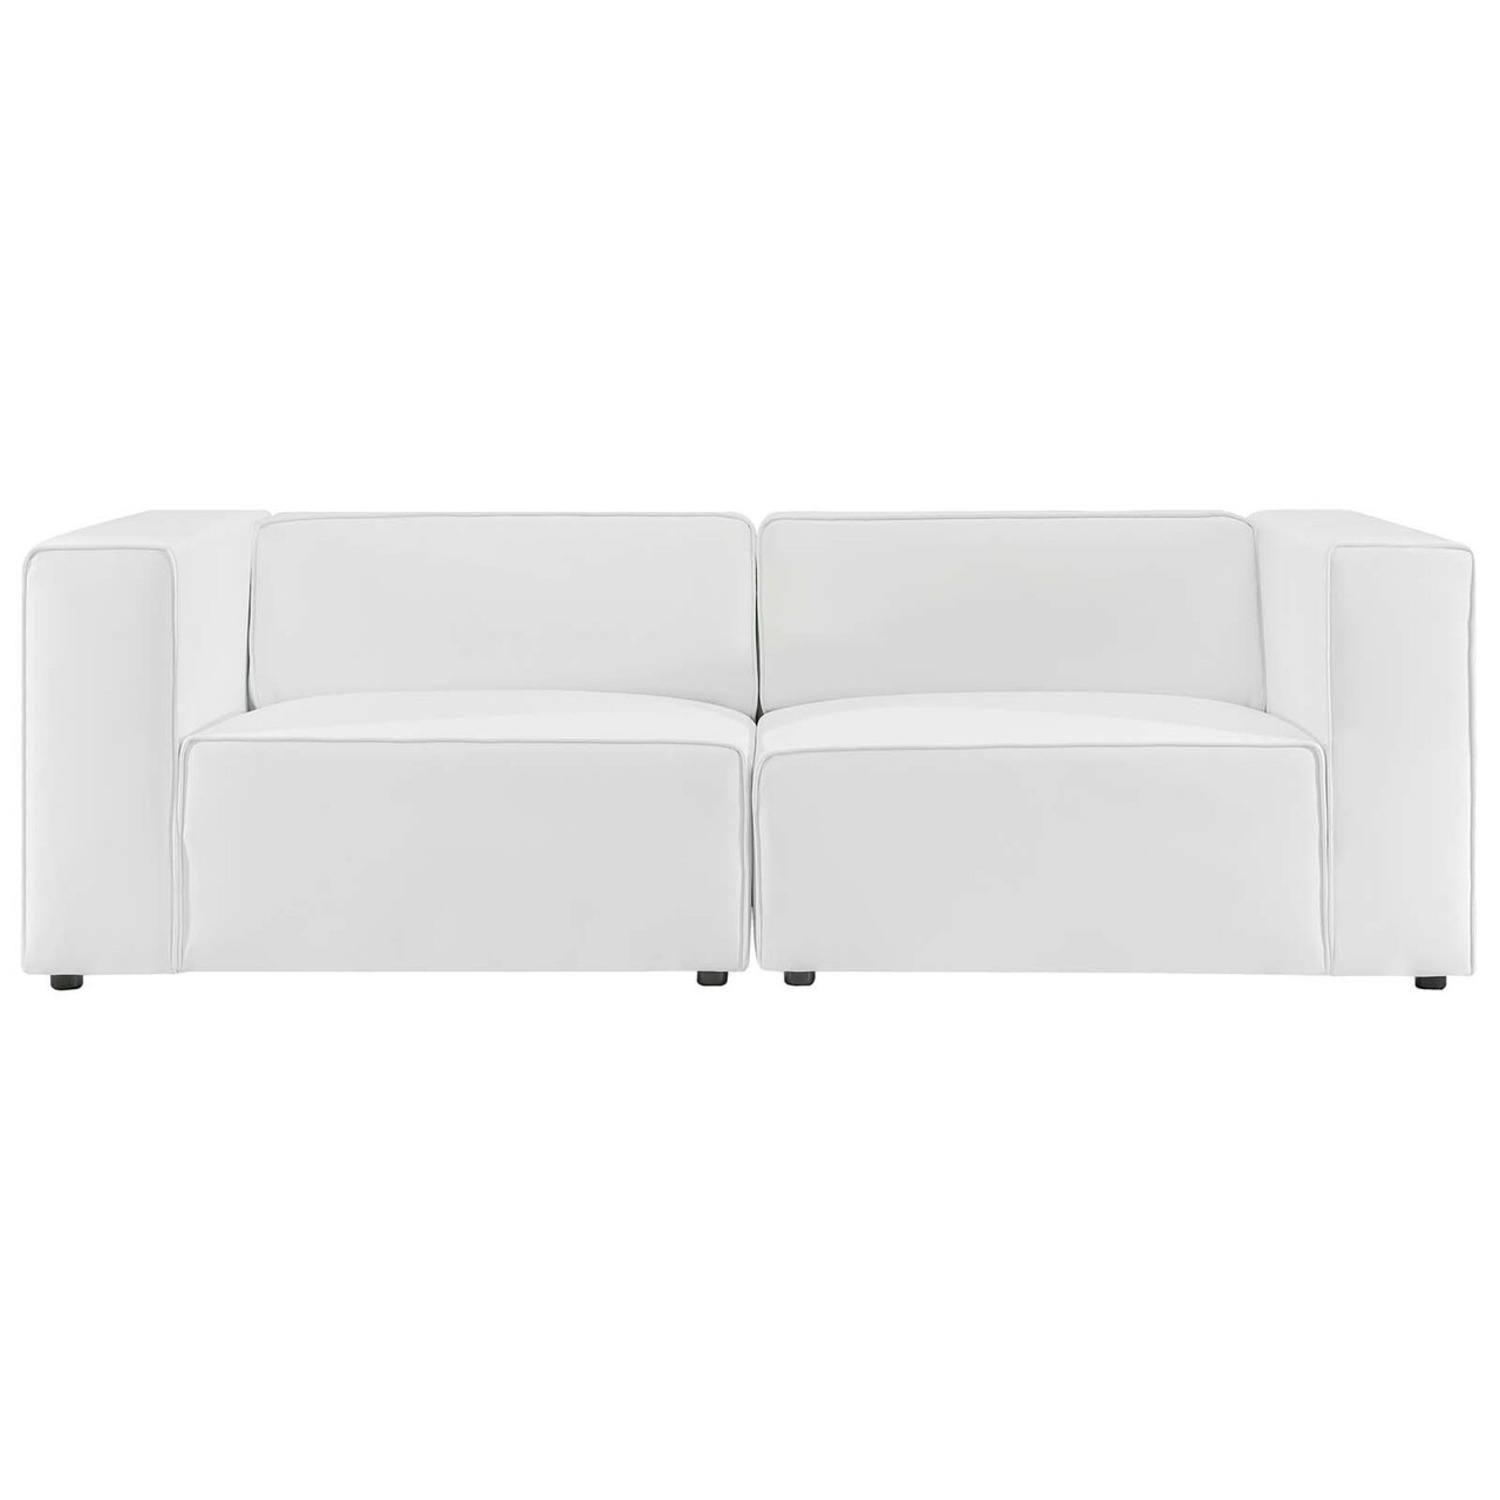 2-Piece Sectional Sofa In White Leather Finish - image-1